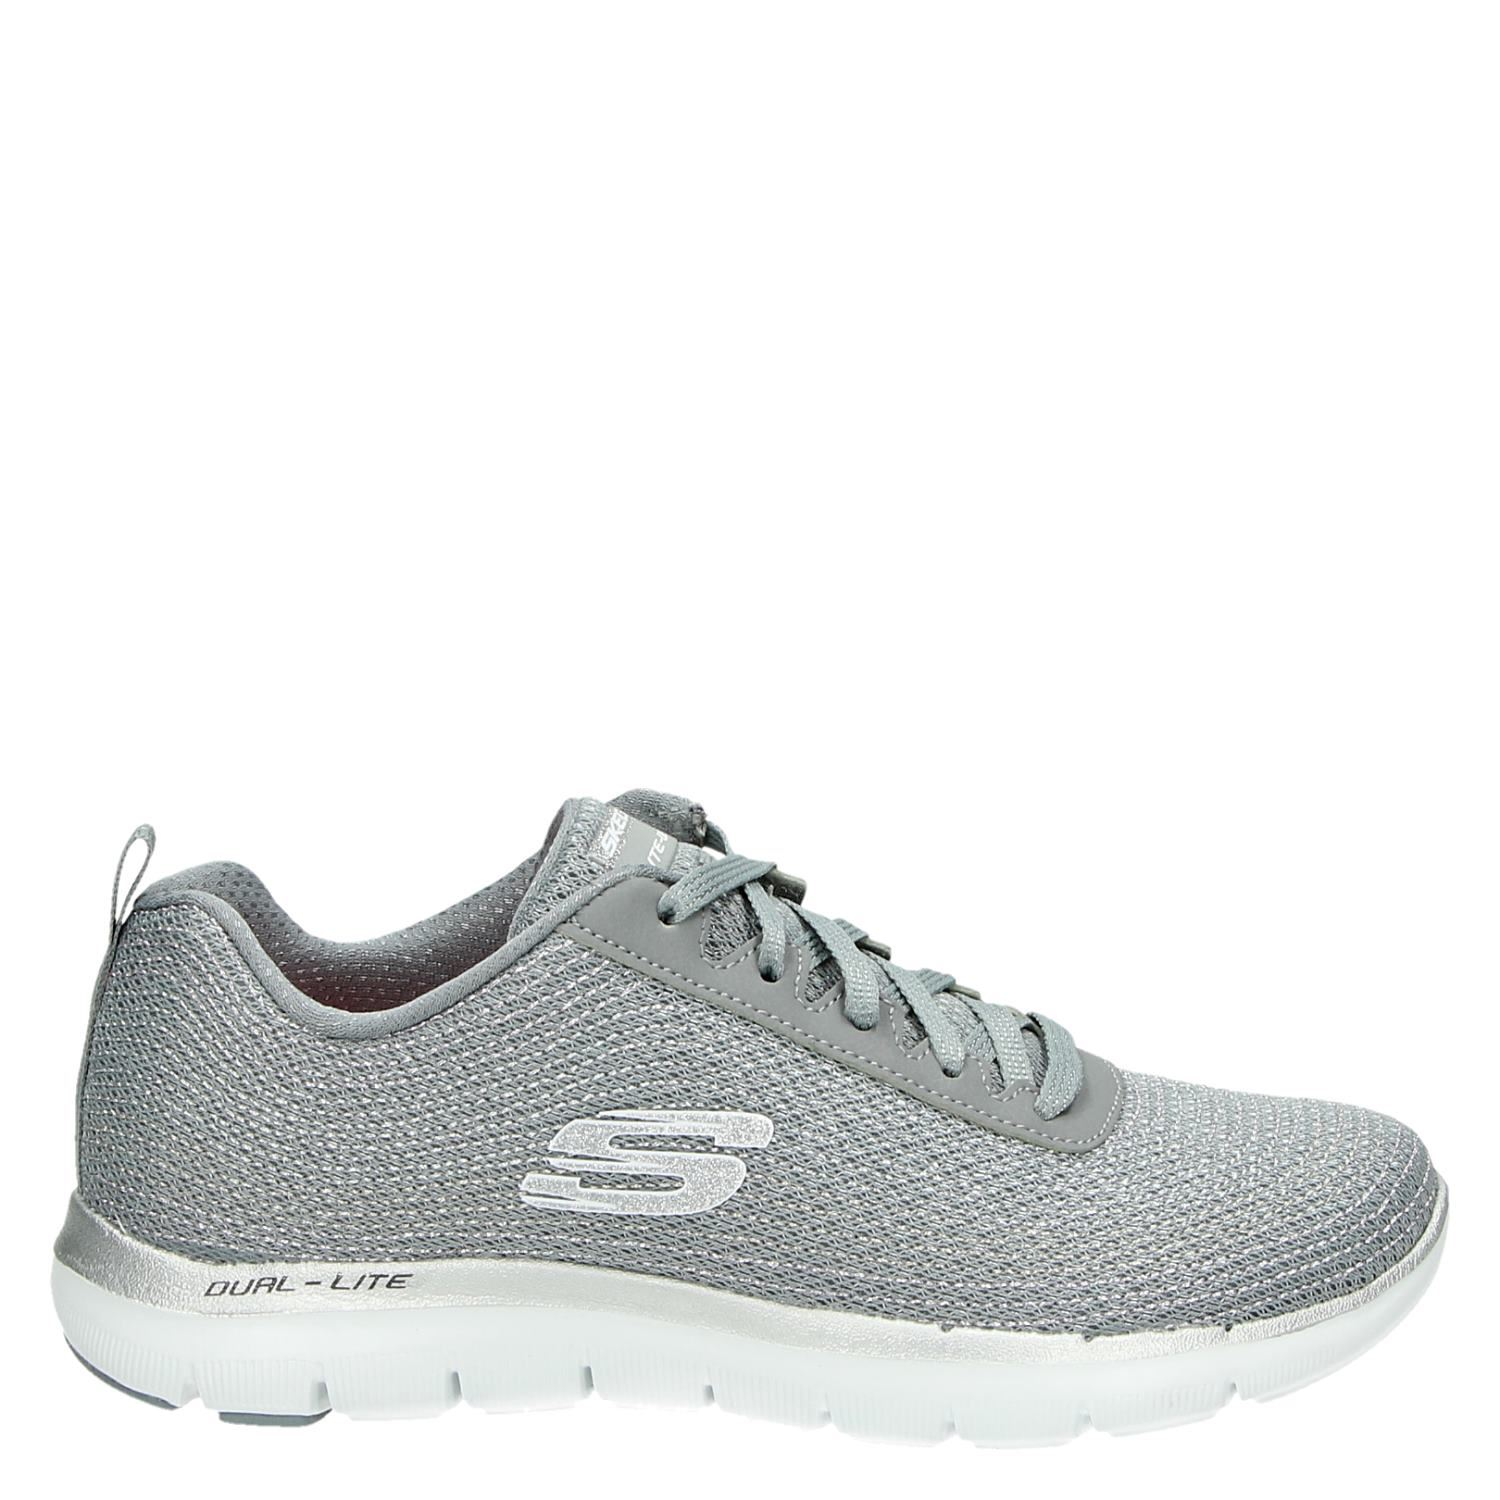 Skechers Dames Skechers Dames Lage Sneakers Grijs